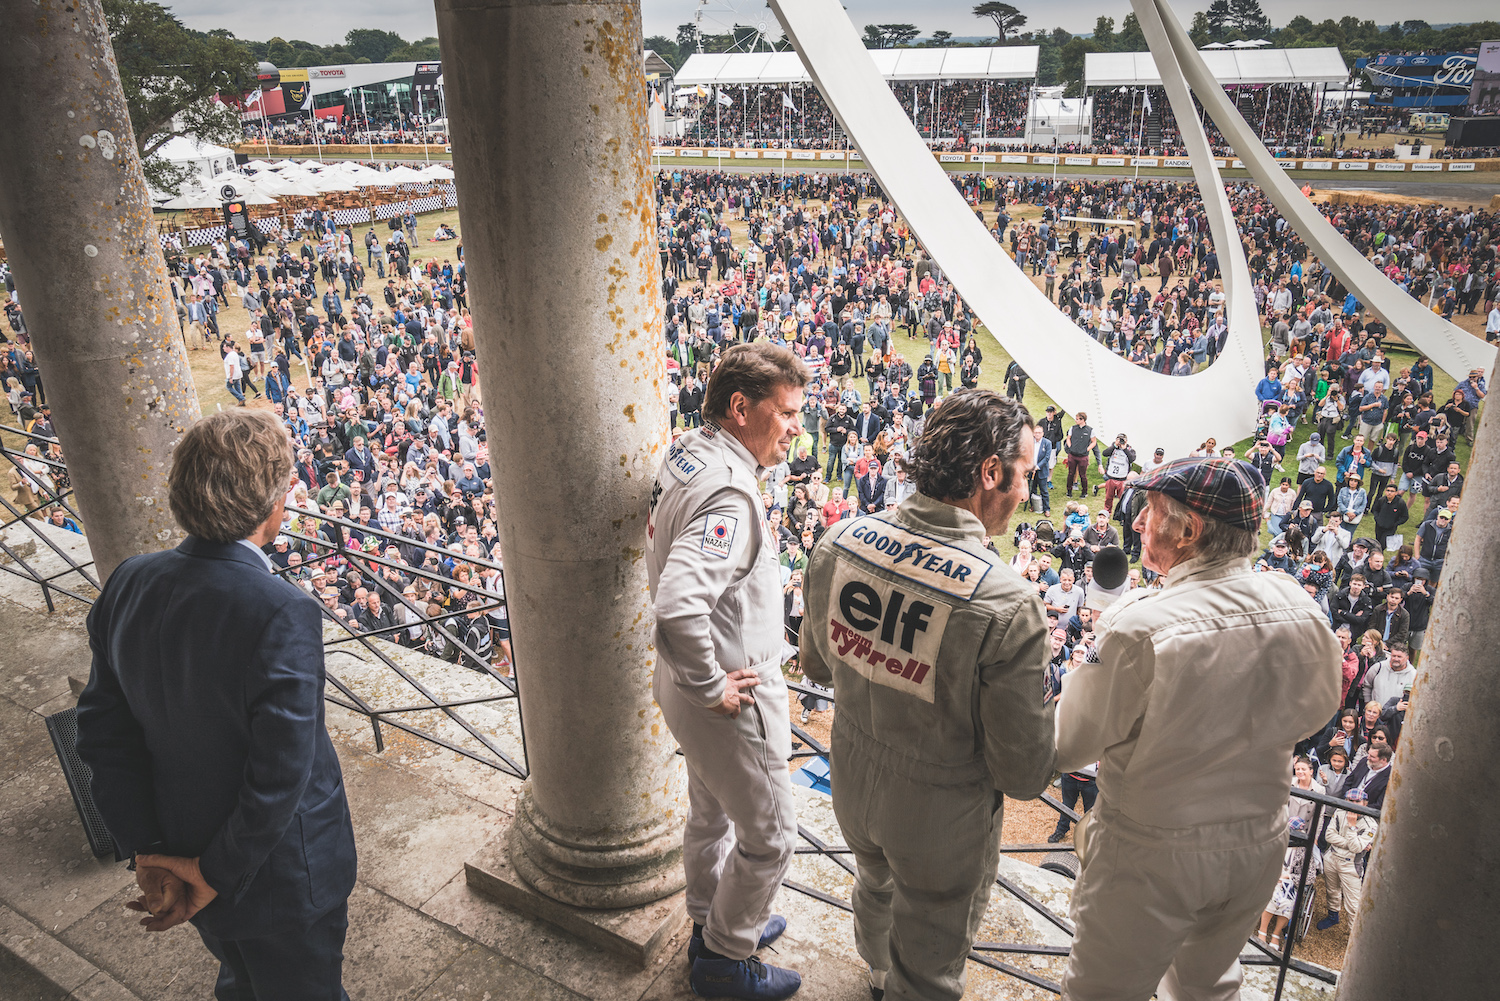 race car drivers at megaphone in front of goodwood festival of speed crowd